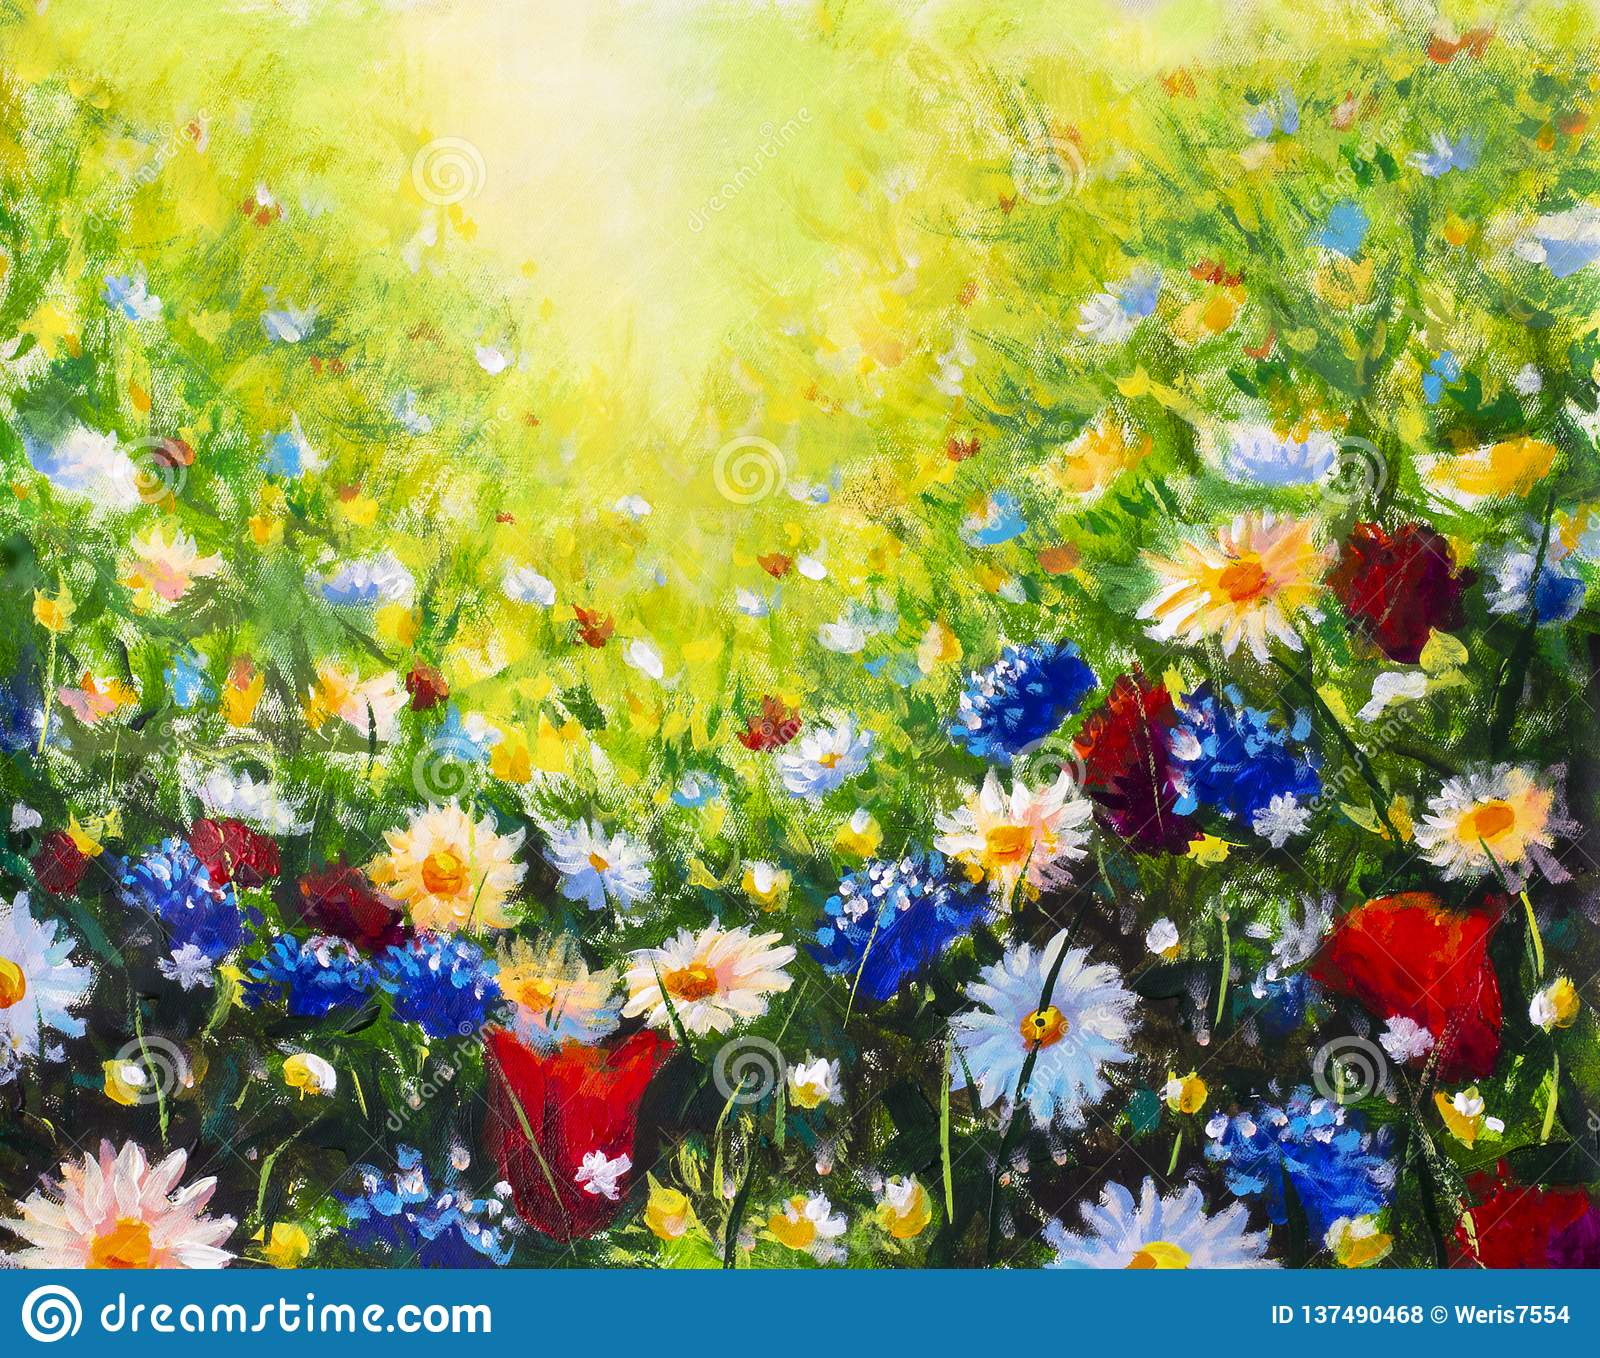 Painting Flower Modern Colorful Wild Flowers Stock Photo Image Of Field Landscape 137490468